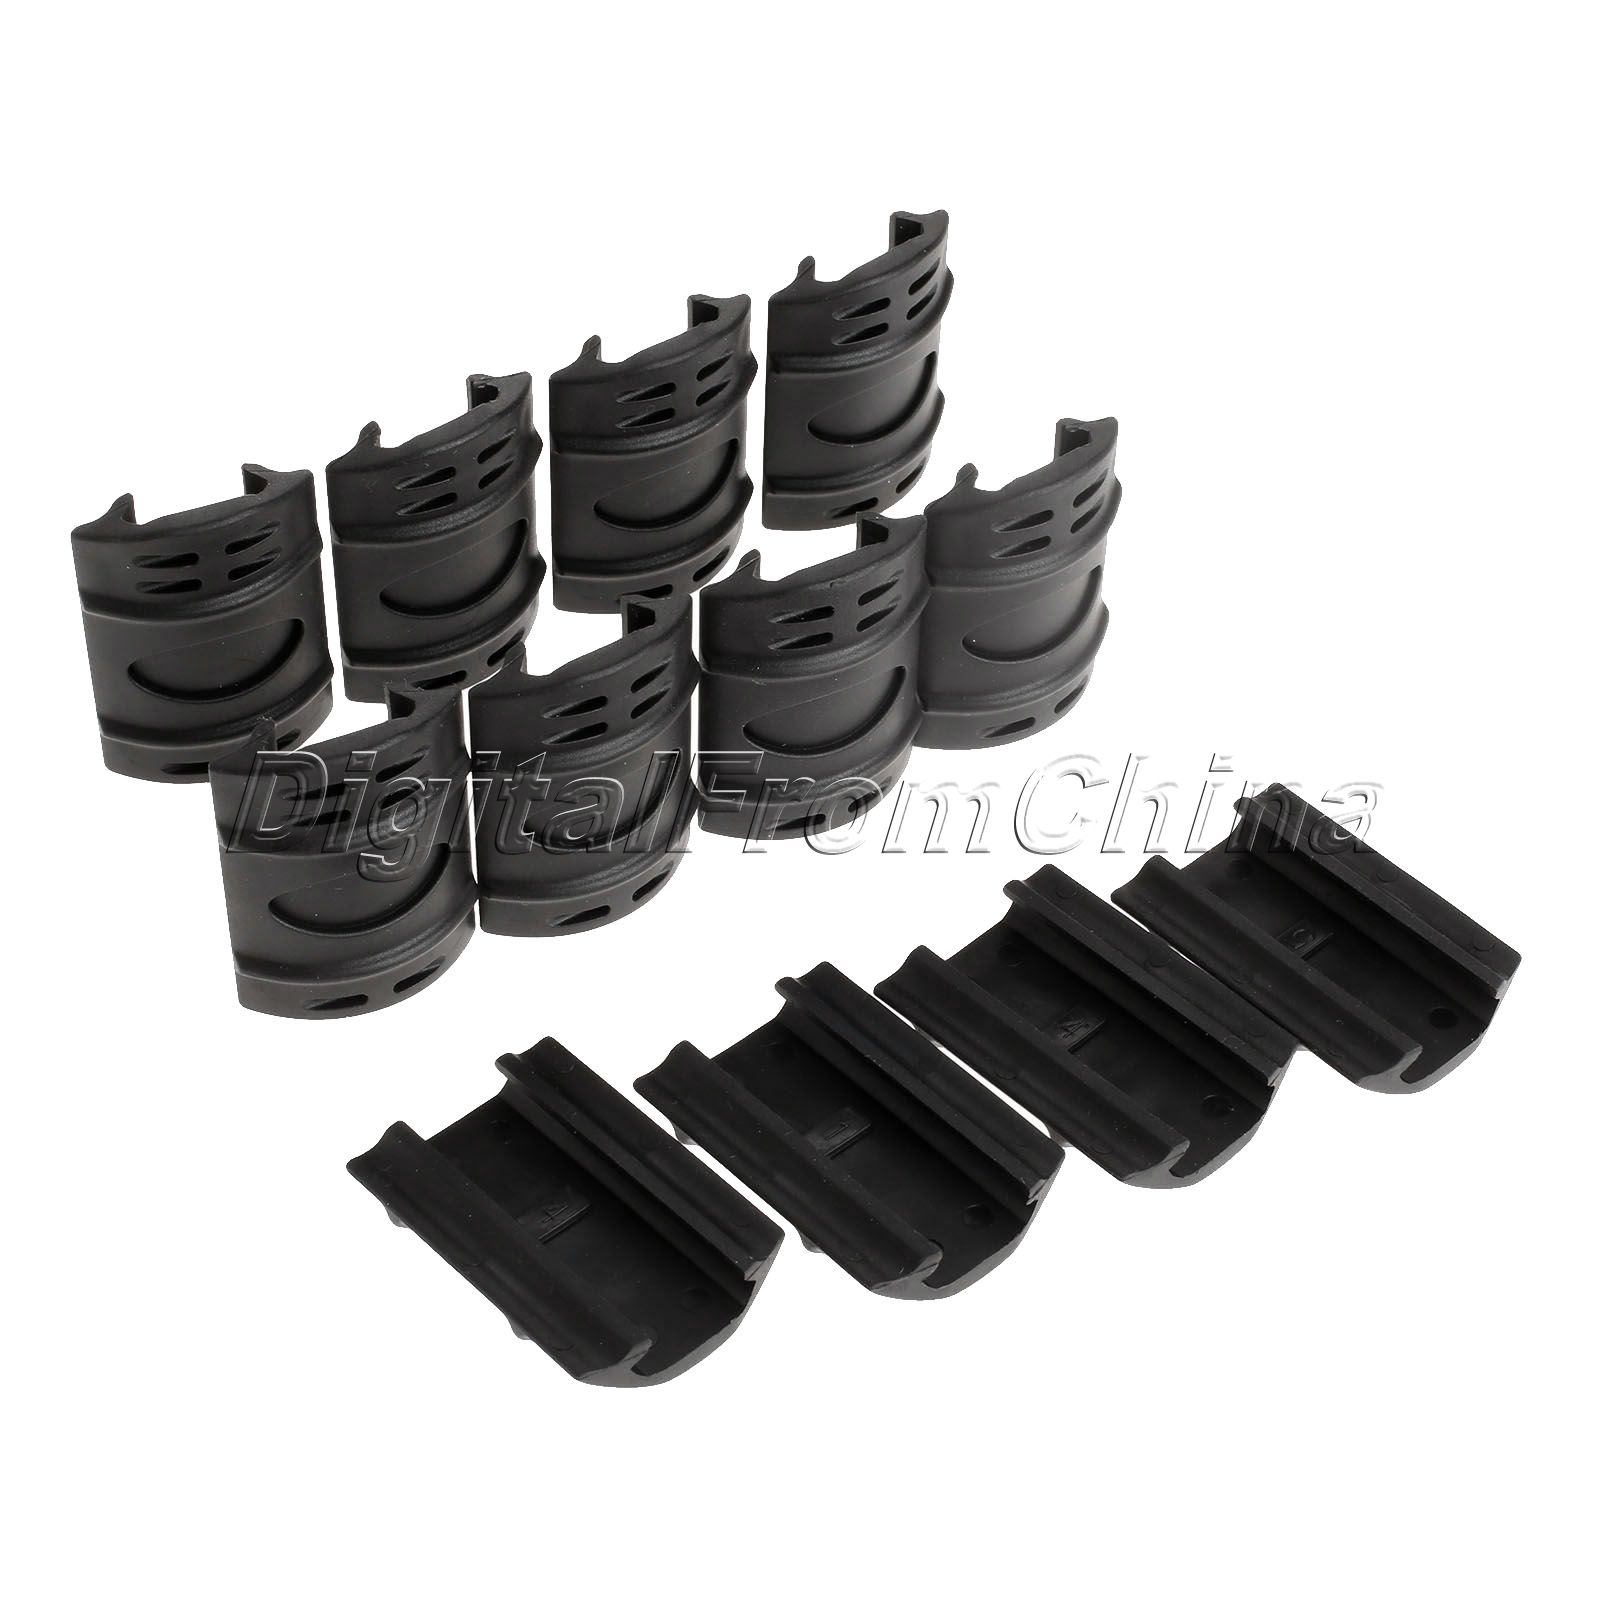 2016 NEW Arrivals Tactical For Picatinny Weaver Black Rail Rubber Cover Panels Guard Covers Rubber Handguard Quad Rail Covers